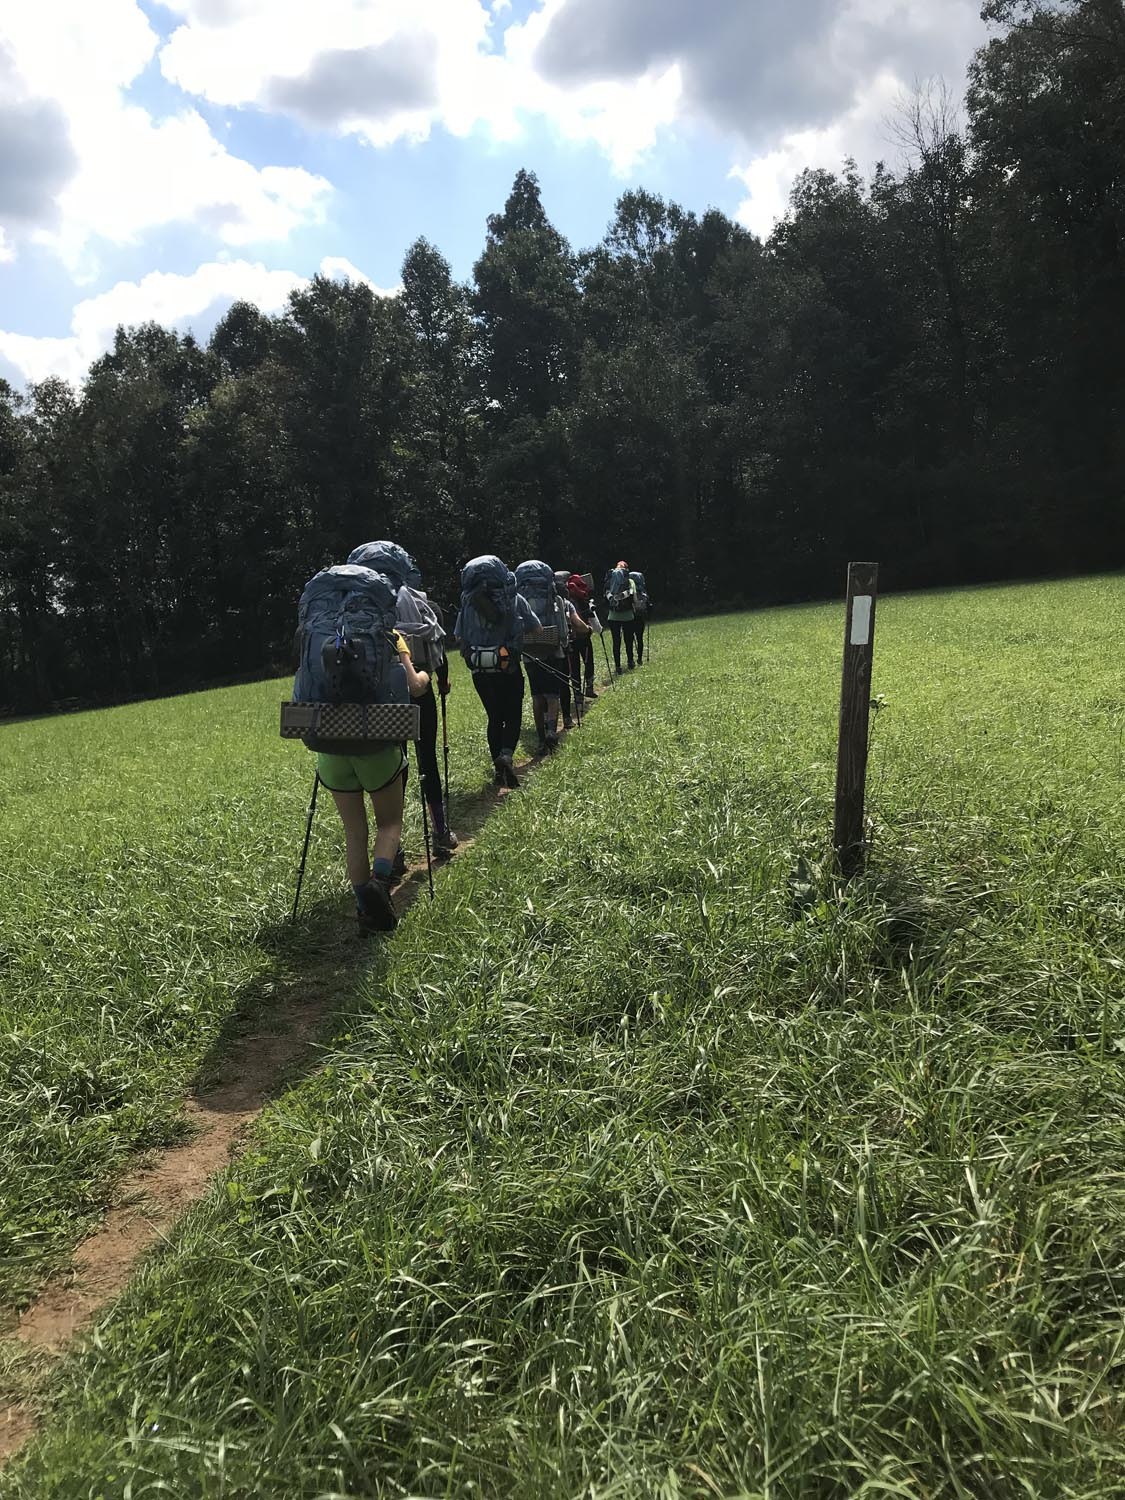 The AT blazes keep hikers on track. It's amazing to hike through forests and into open pastures. On this particular trek, we encountered a herd of Longhorn cattle.